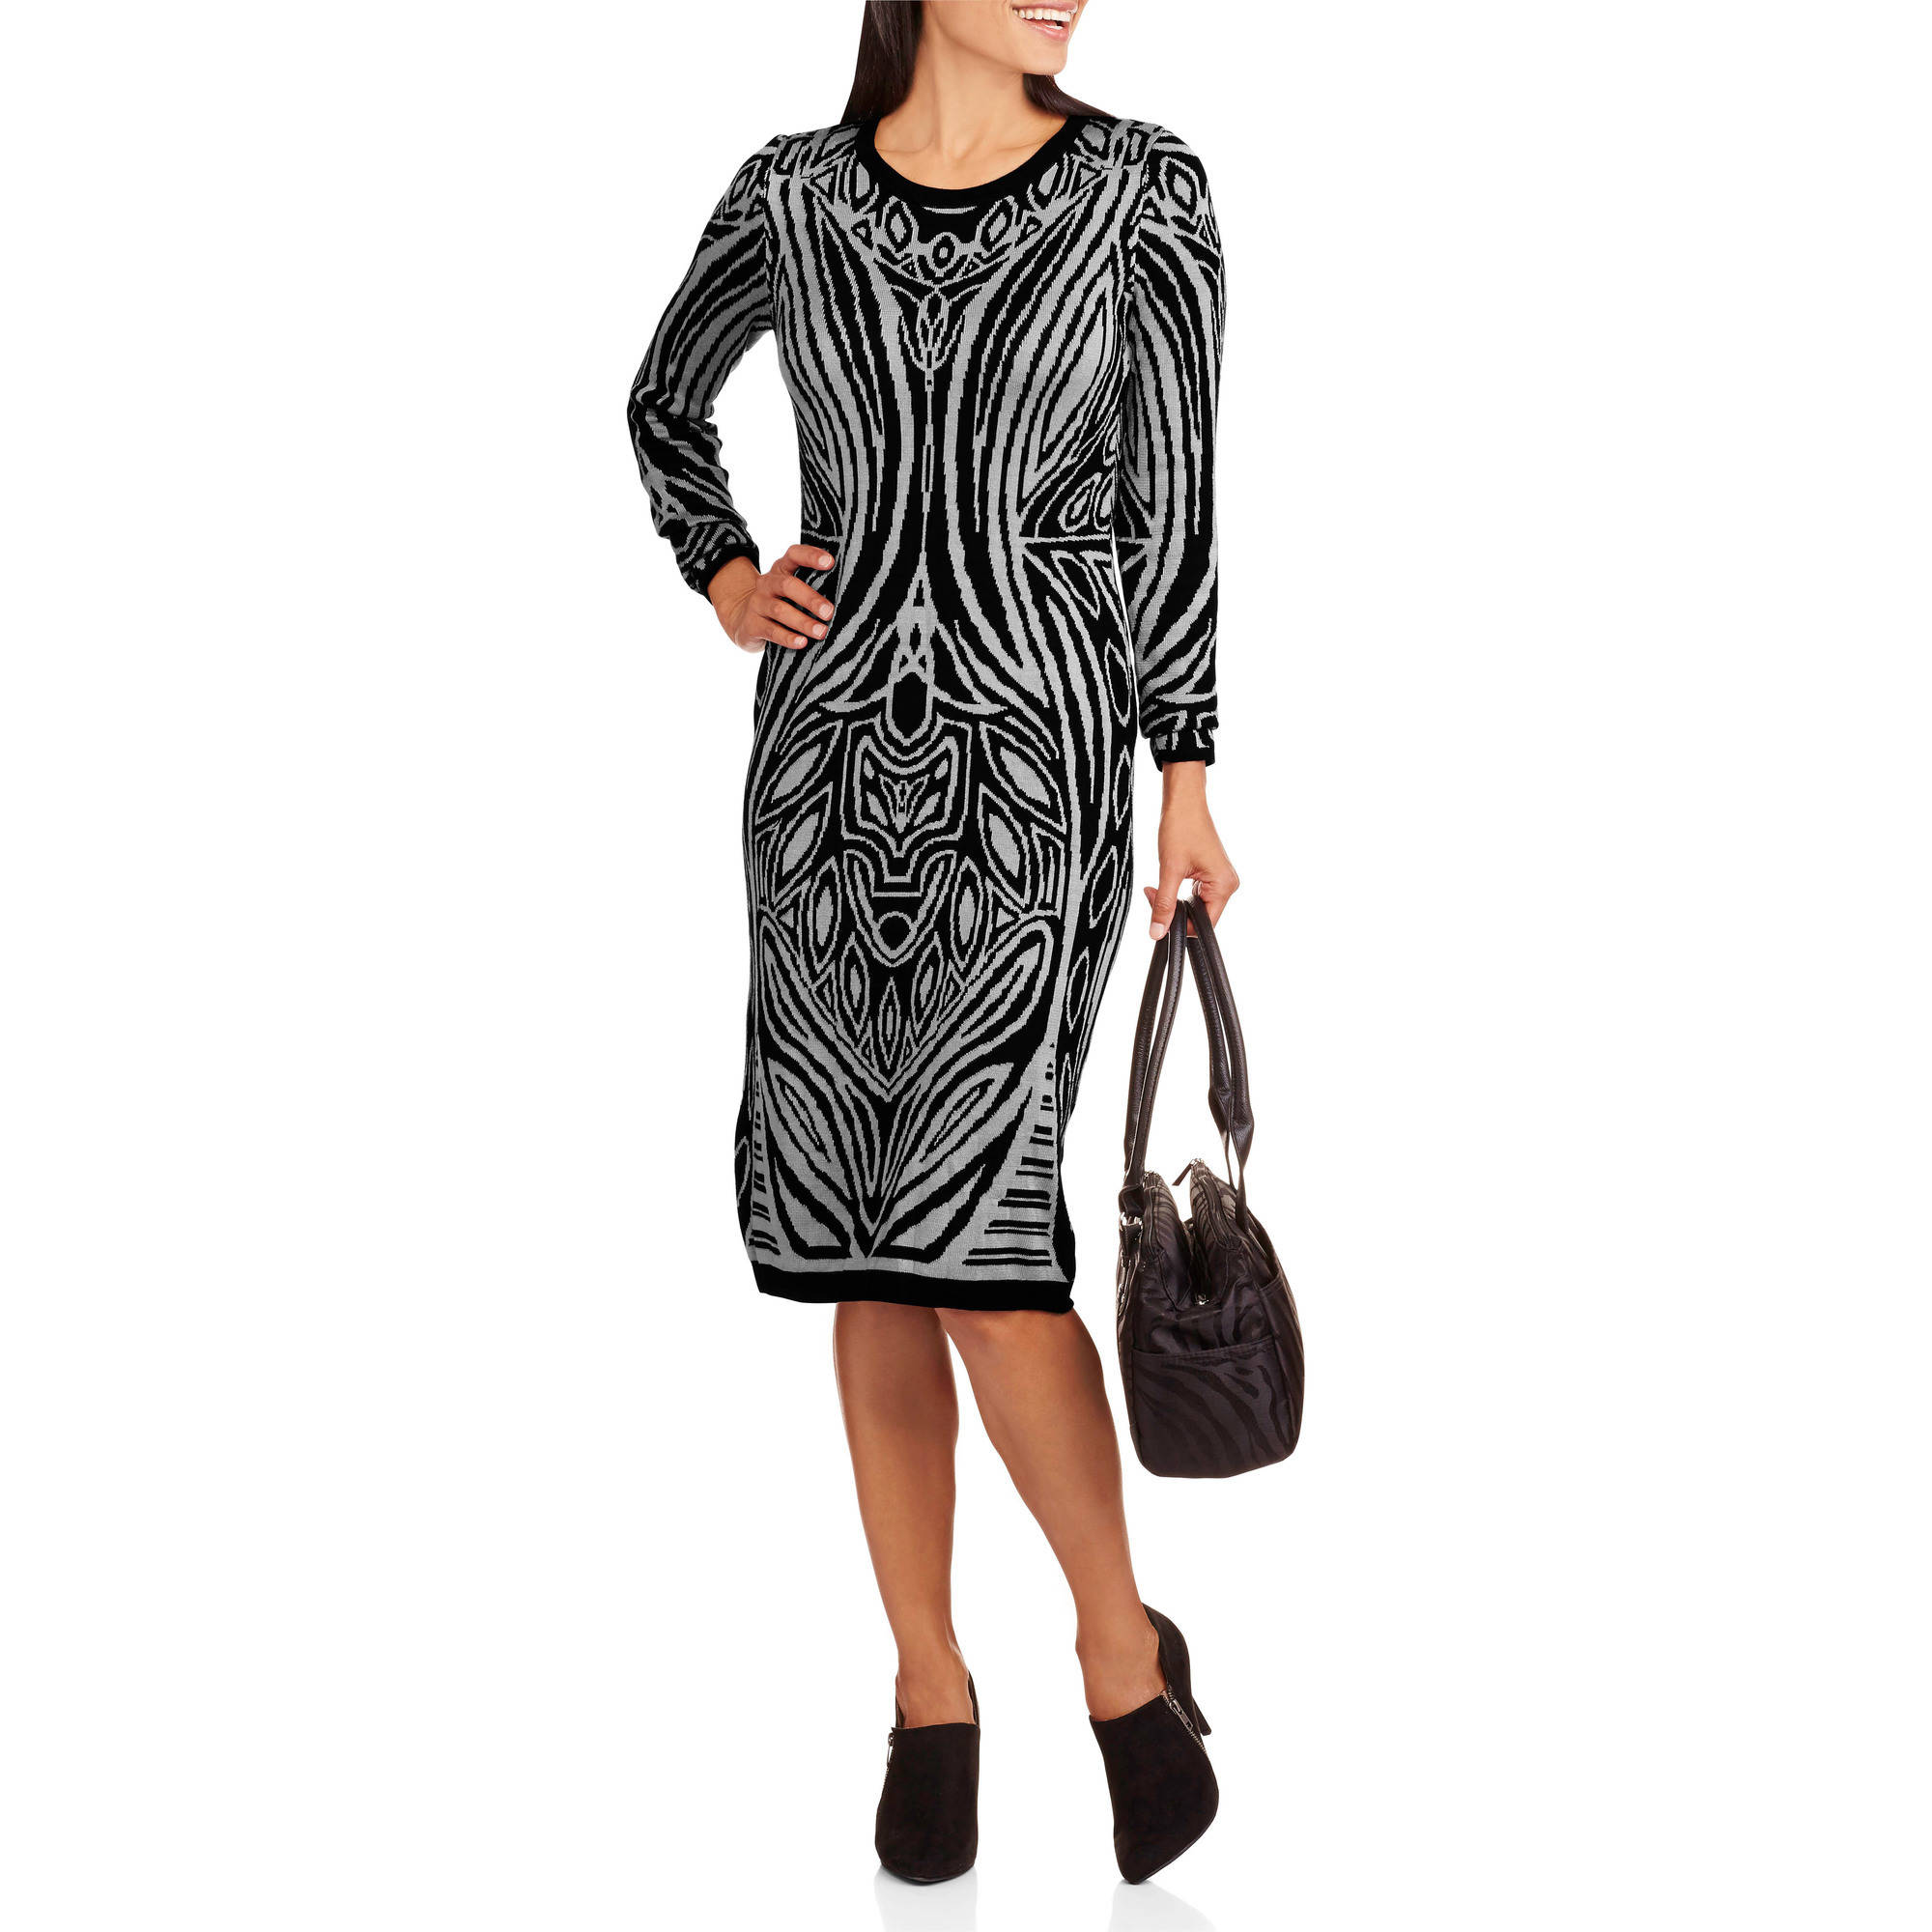 Allison Brittney Women's Long Sleeve Geometric Print Sweater Dress